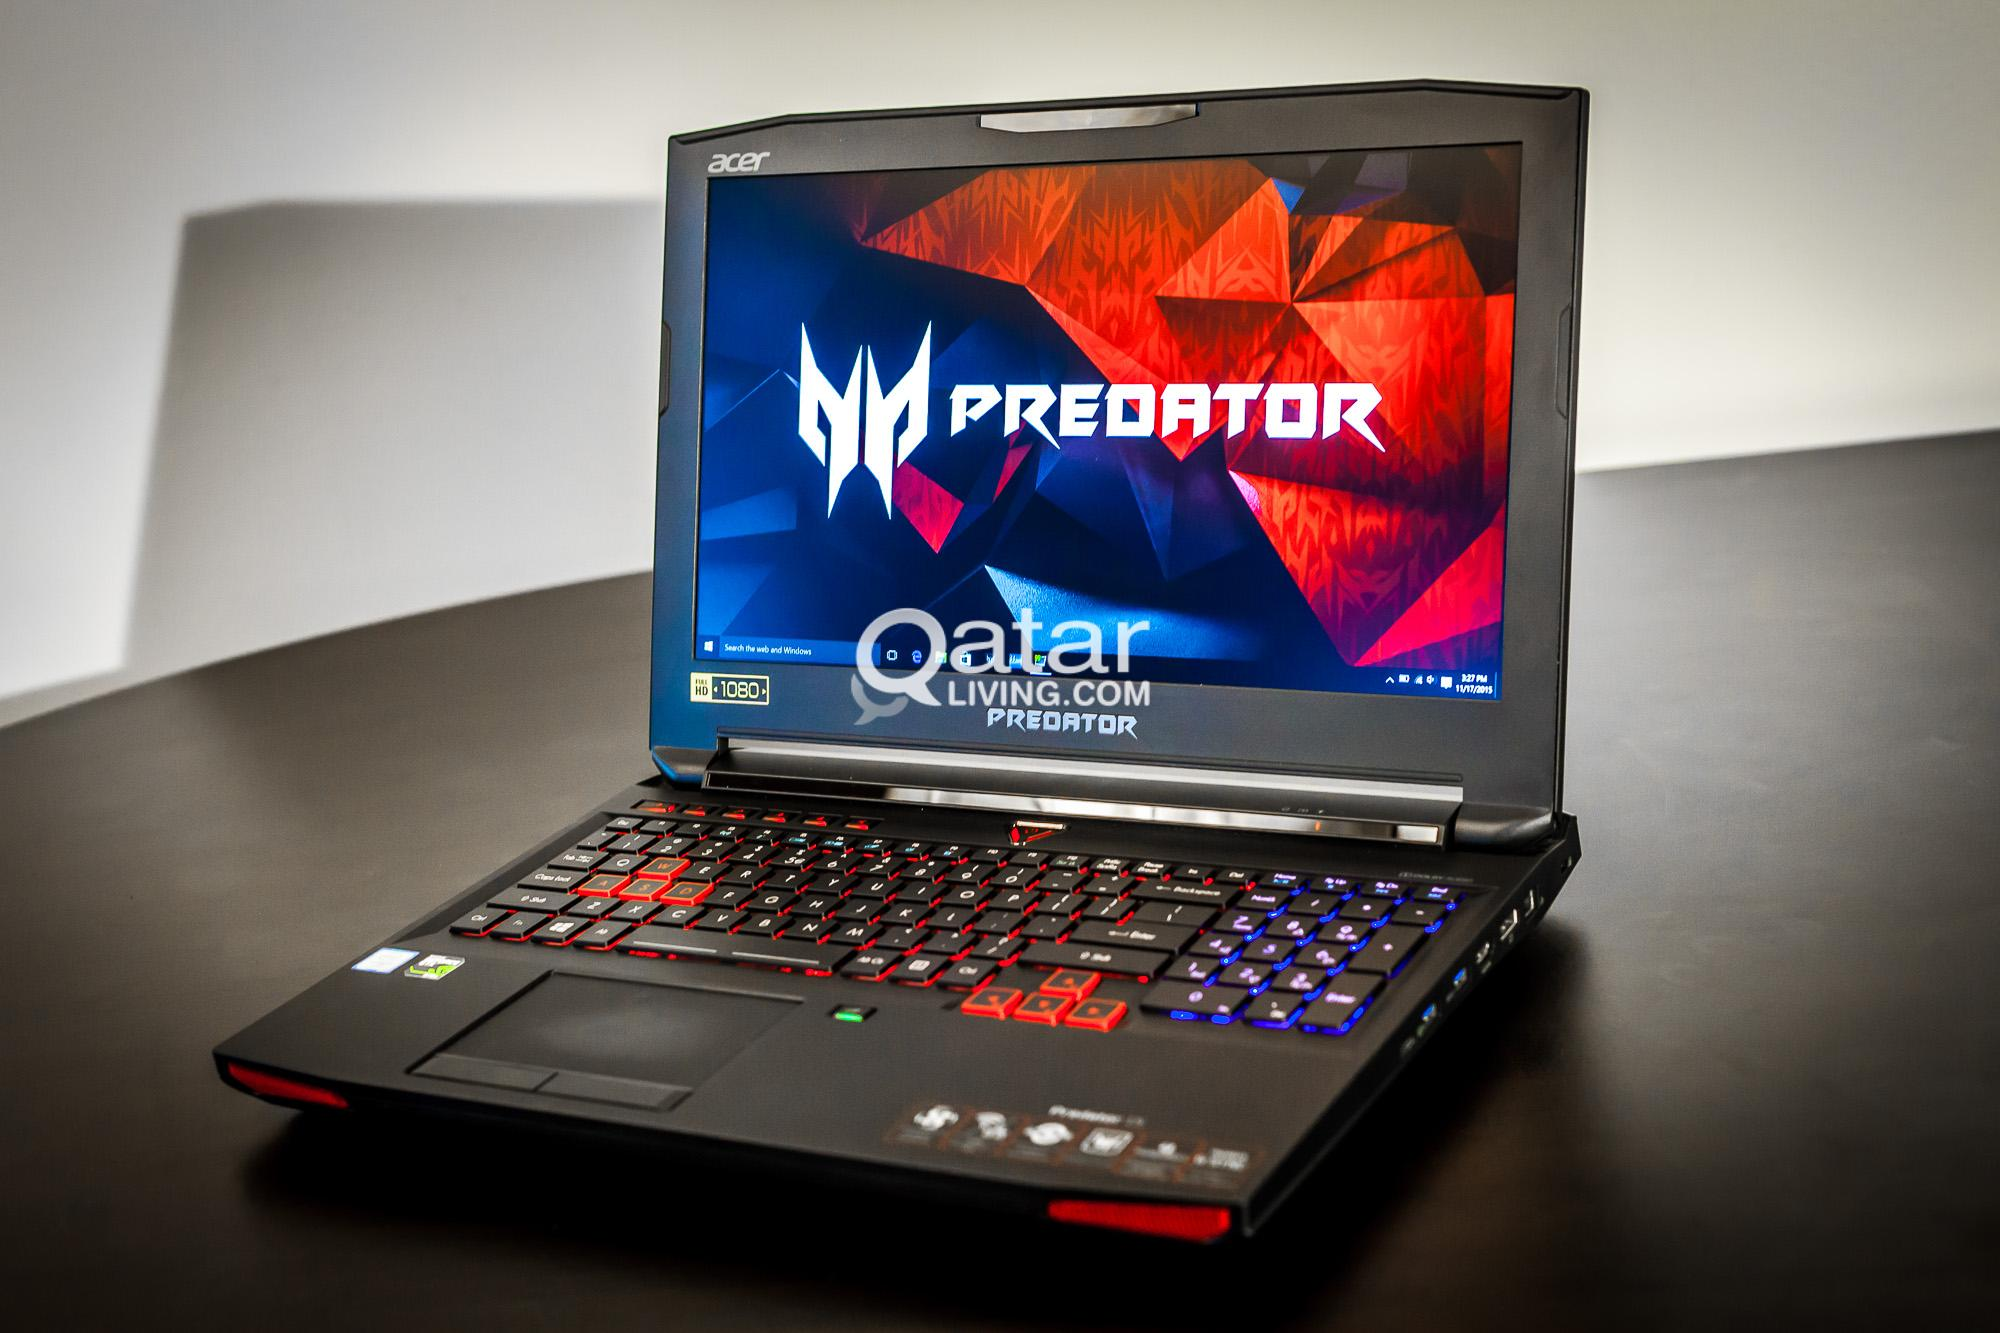 Acer Predator 15 Gaming Laptop Qatar Living